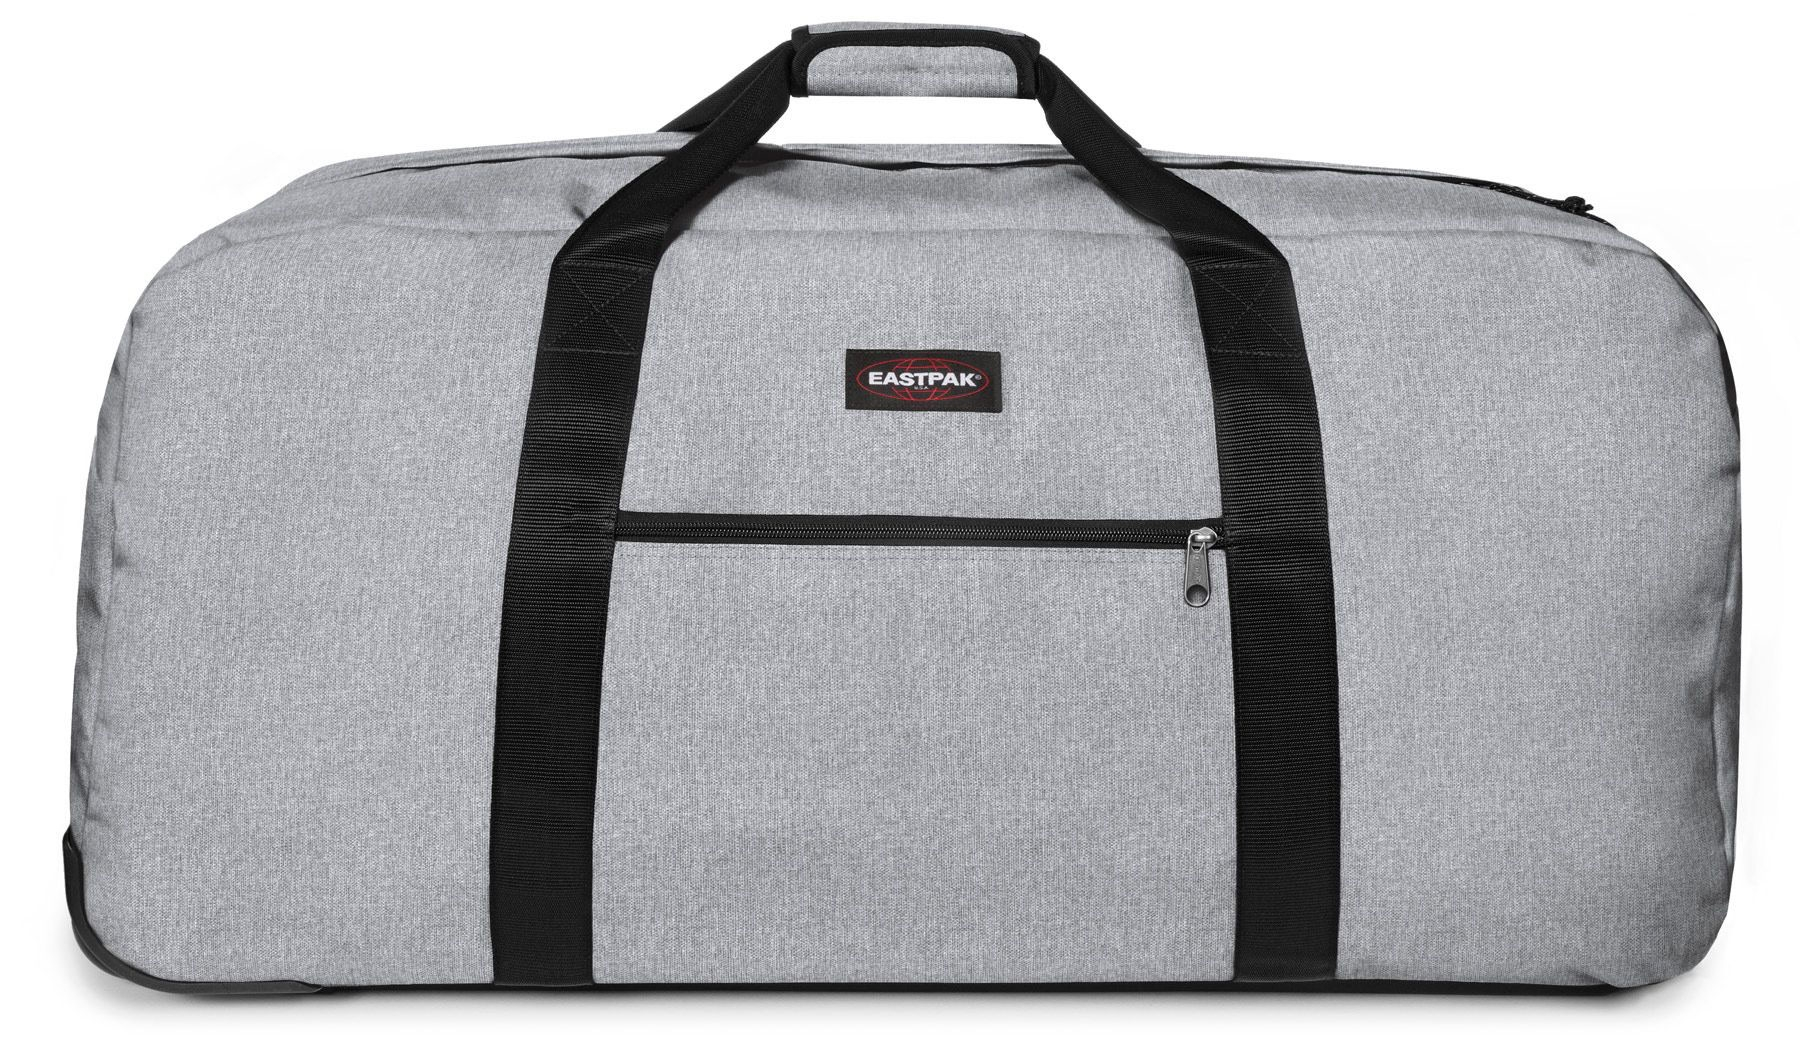 EASTPAK WAREHOUSE Grand sac XL avec trolley